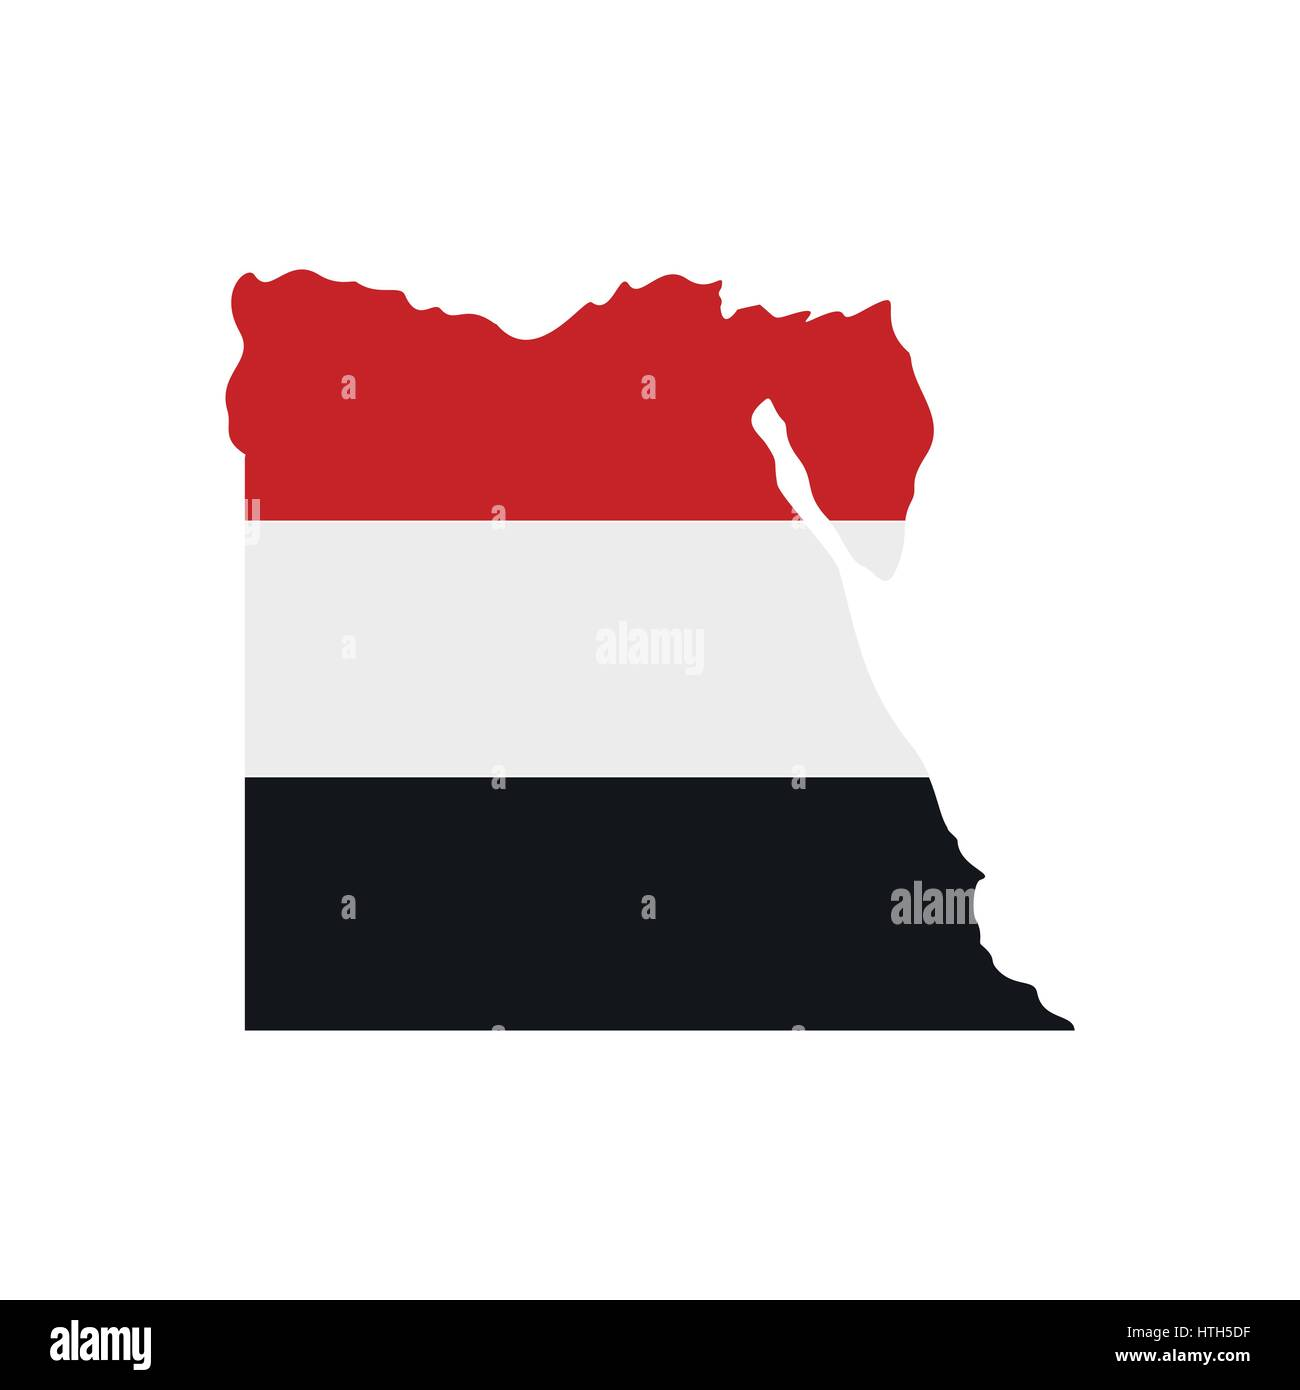 Map of Egypt with the image of the national flag - Stock Image